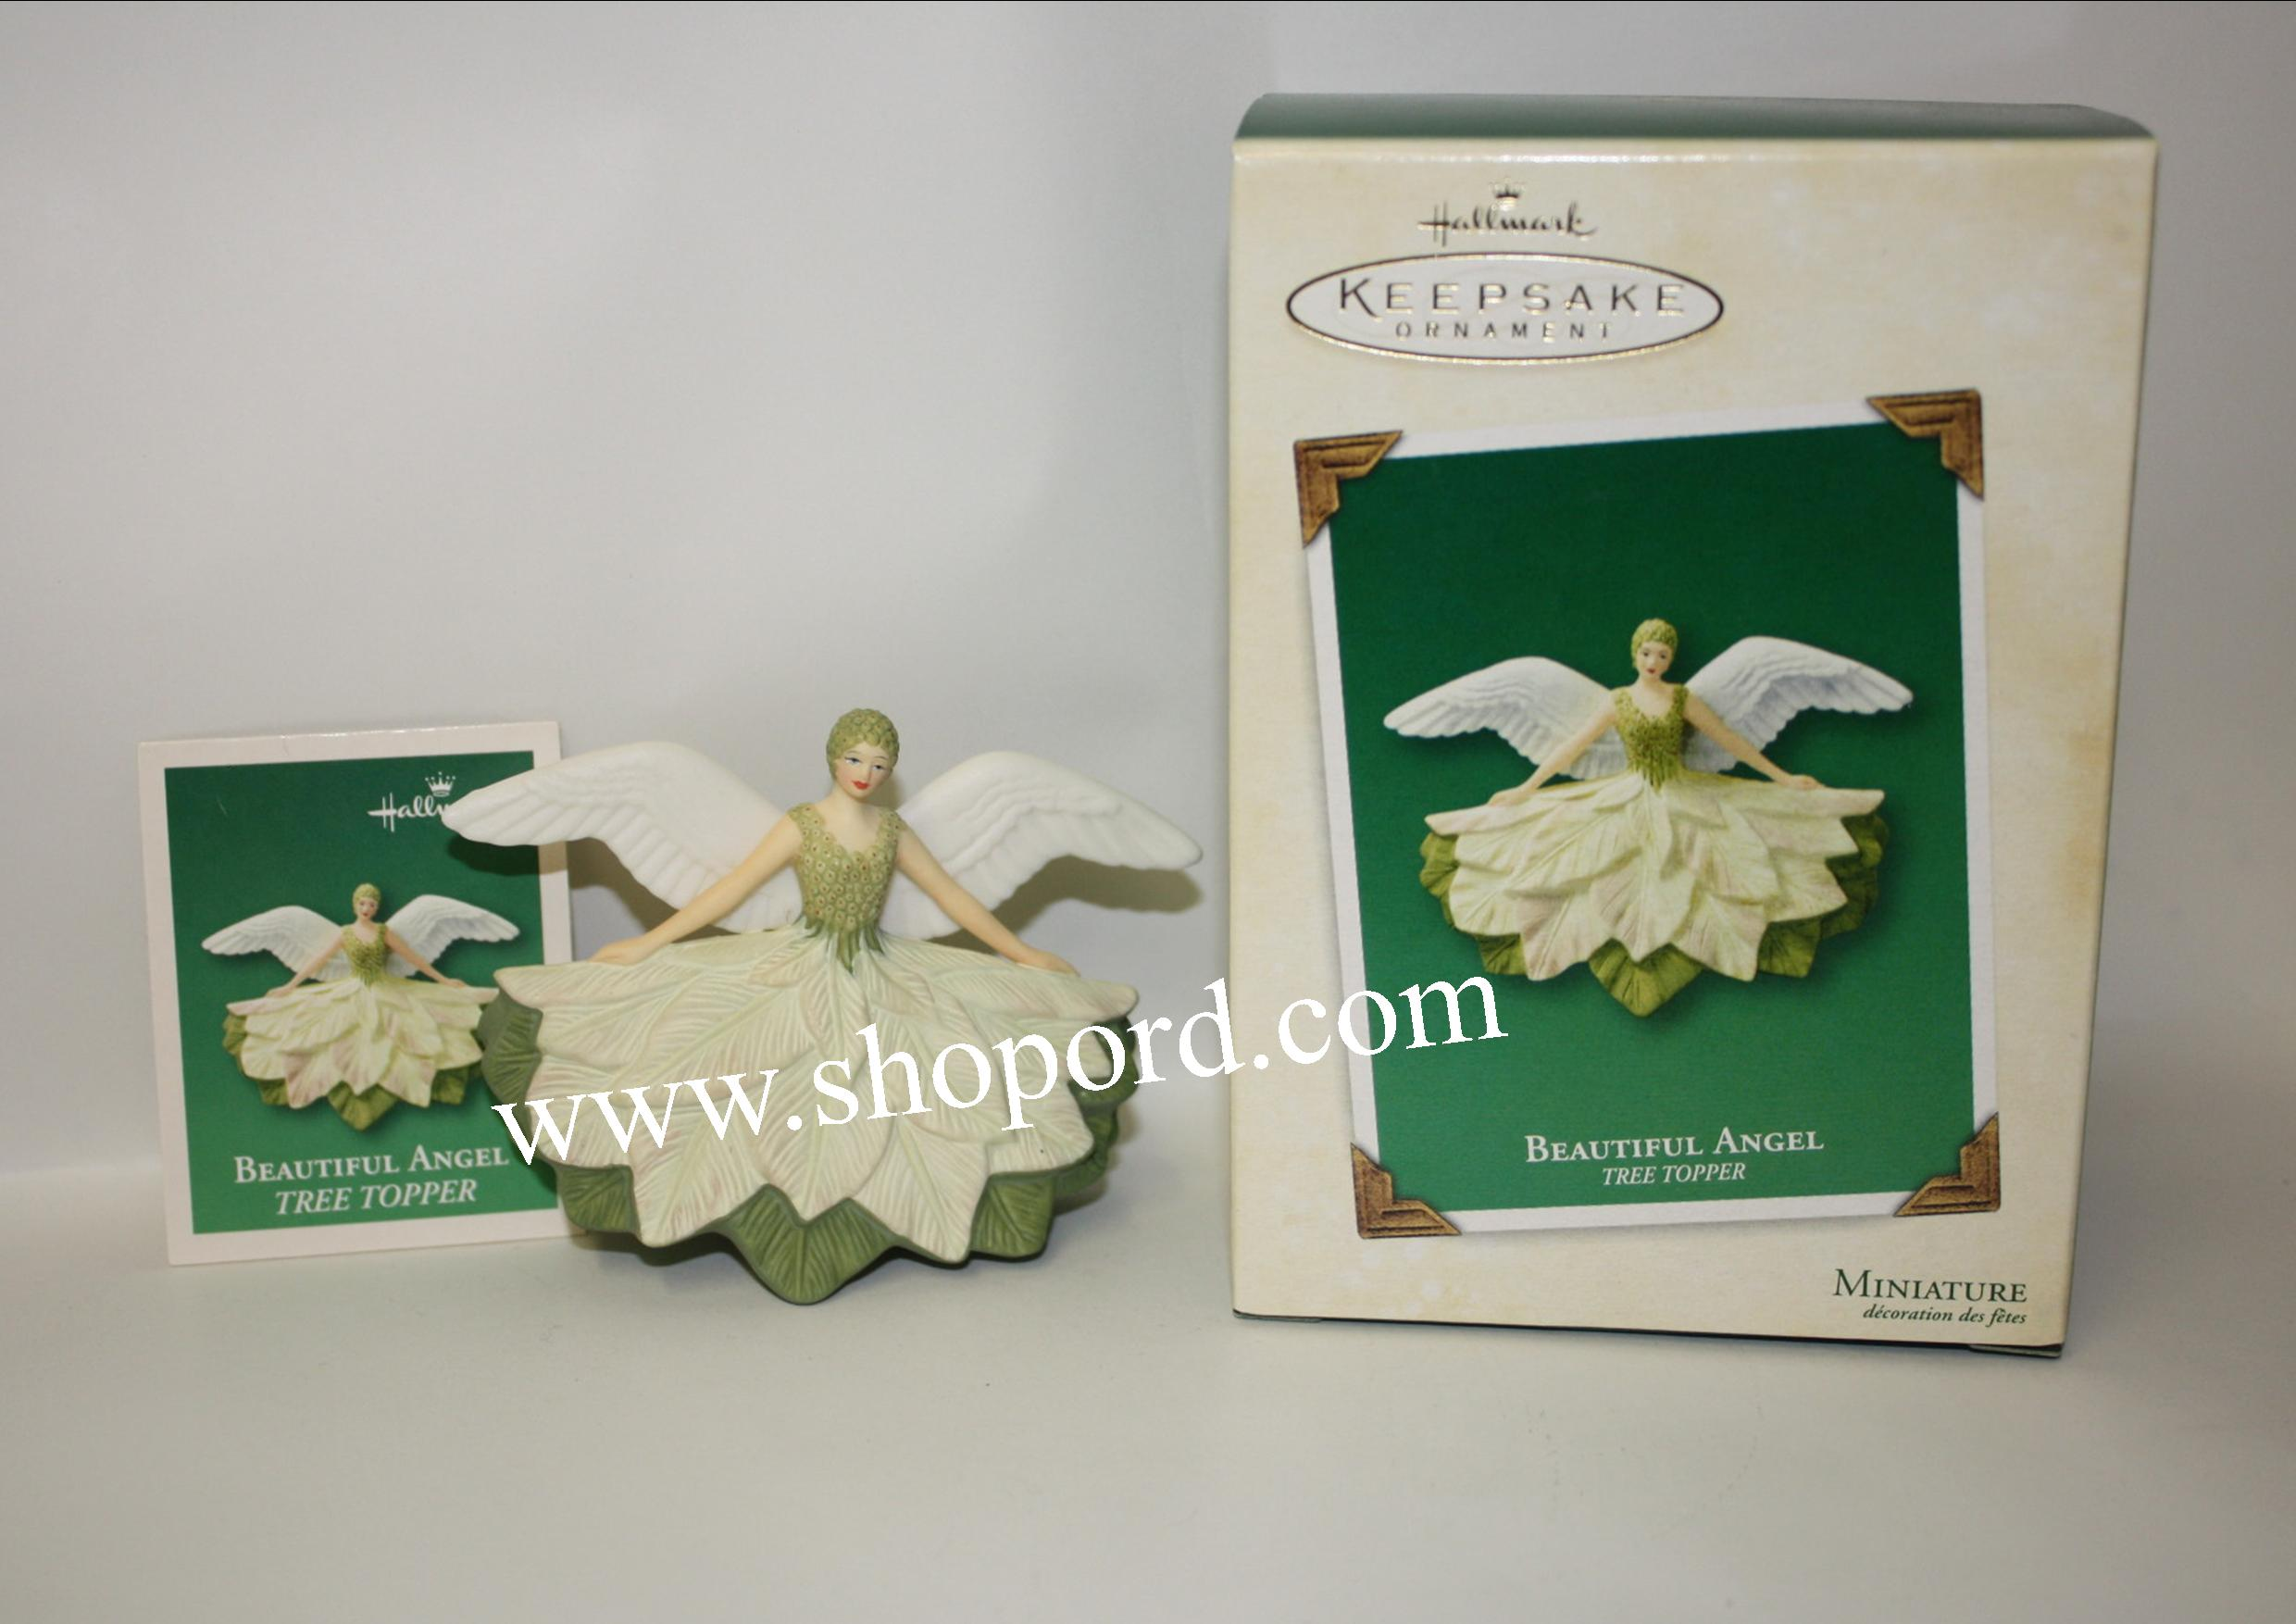 Hallmark 2003 Beautiful Angel Miniature Ornament Tree Topper QXM4987